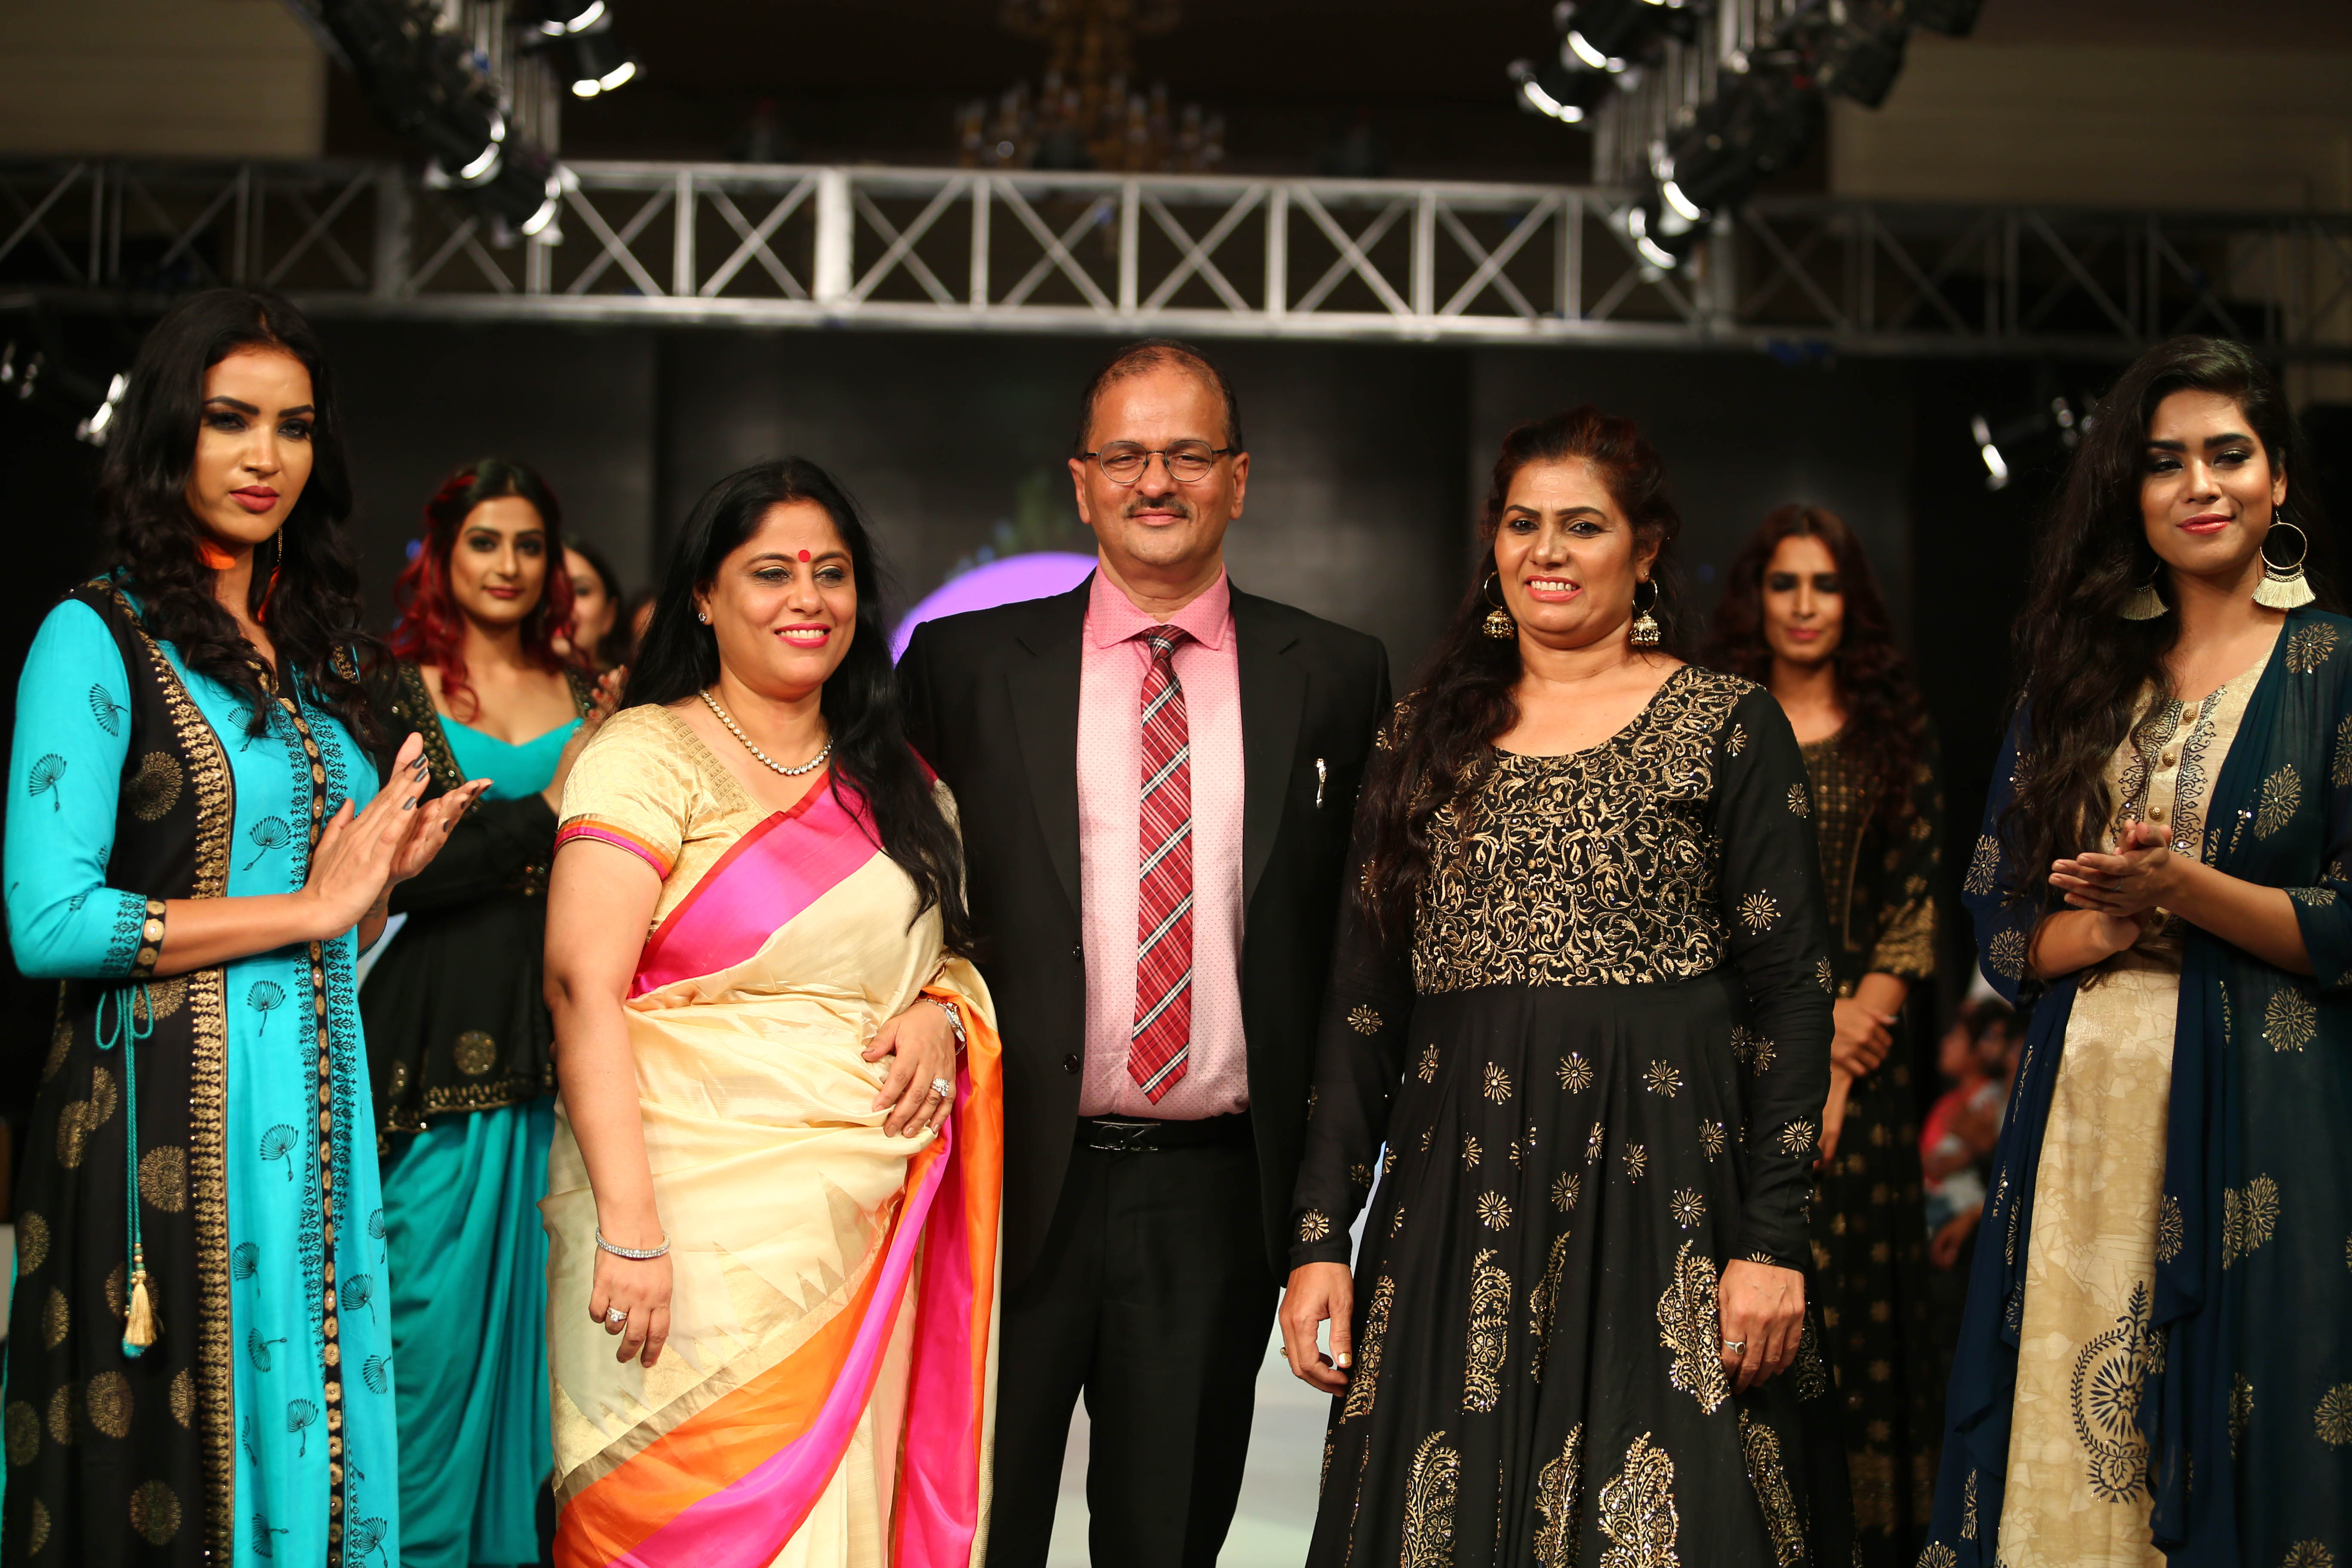 Show stopper Sunil Dabas with Sheetal and Sandeep Kapoor